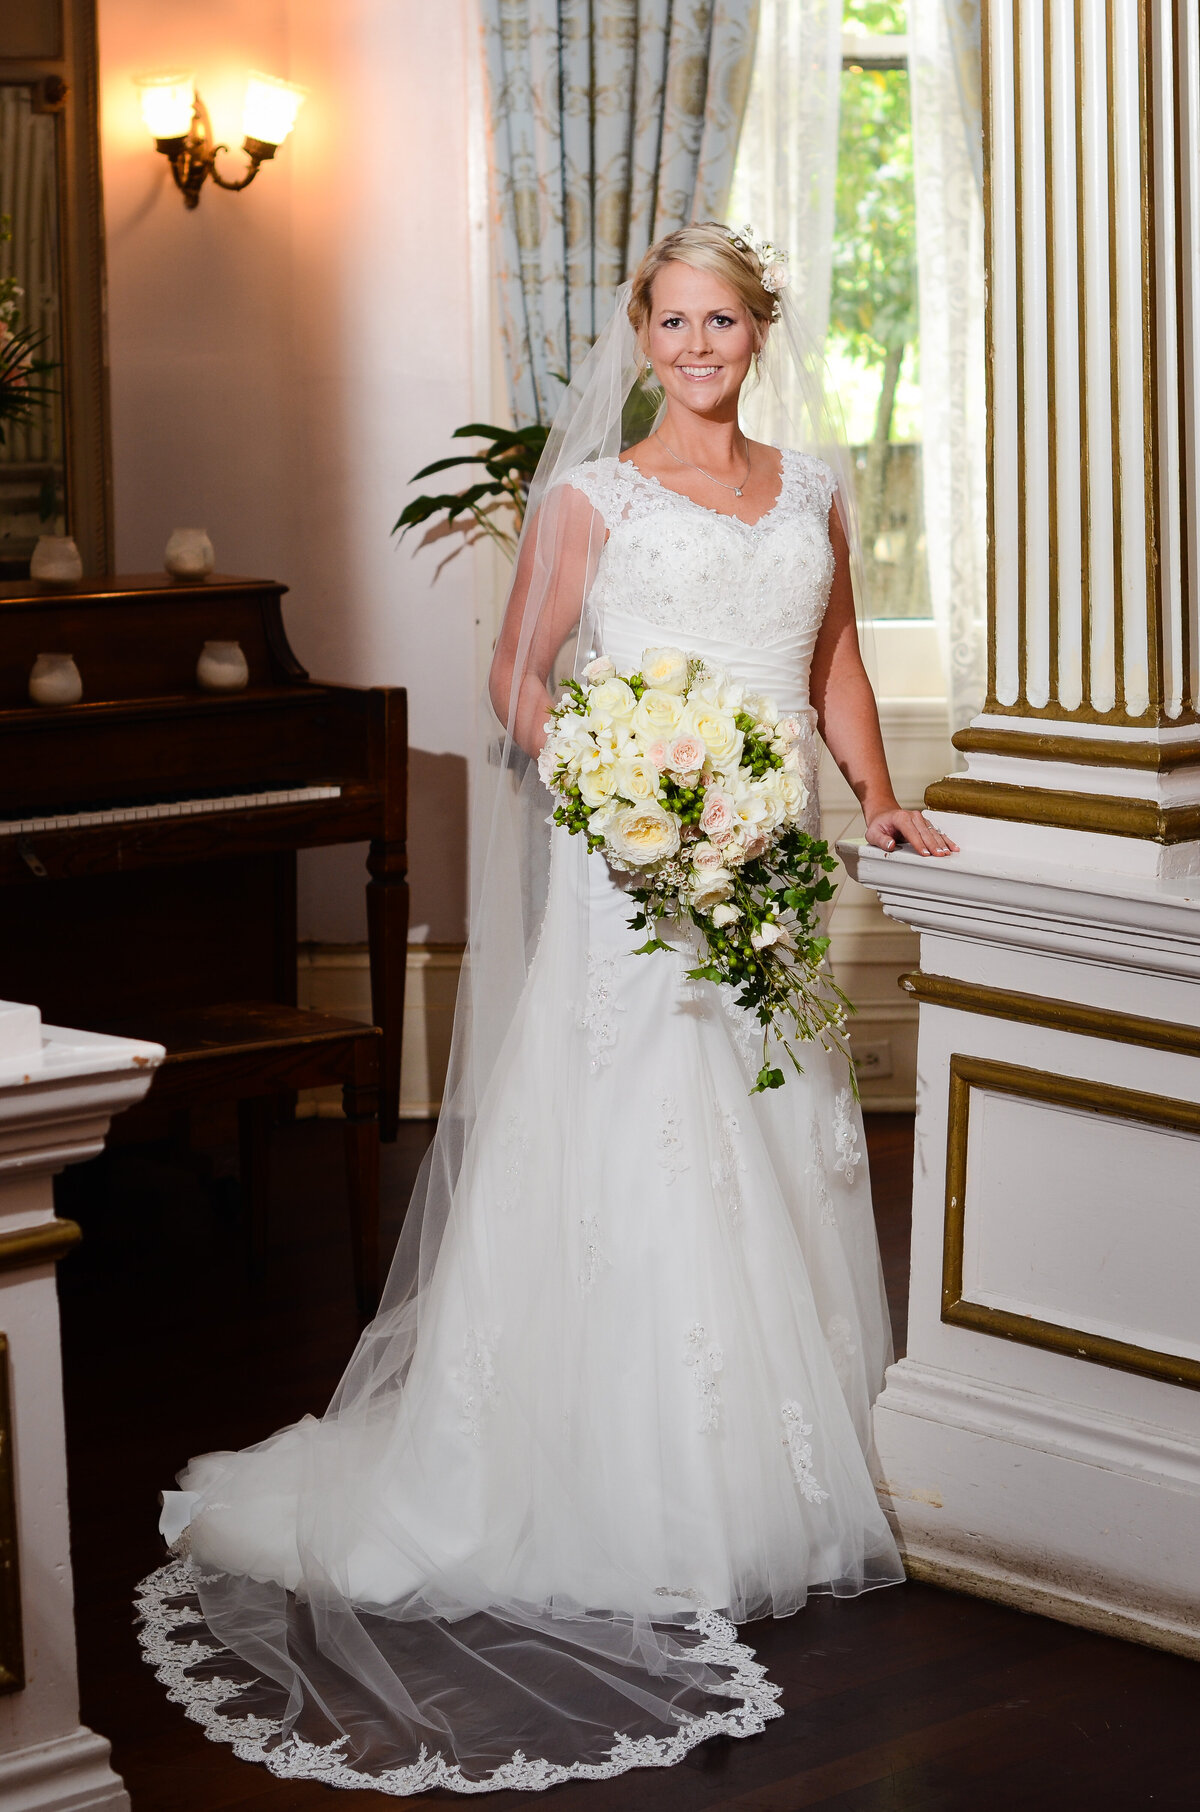 Beautiful bridal portrait: Formal Bridal portrait at The Columns Hotel on St. Charles in New Orleans, NOLA Wedding